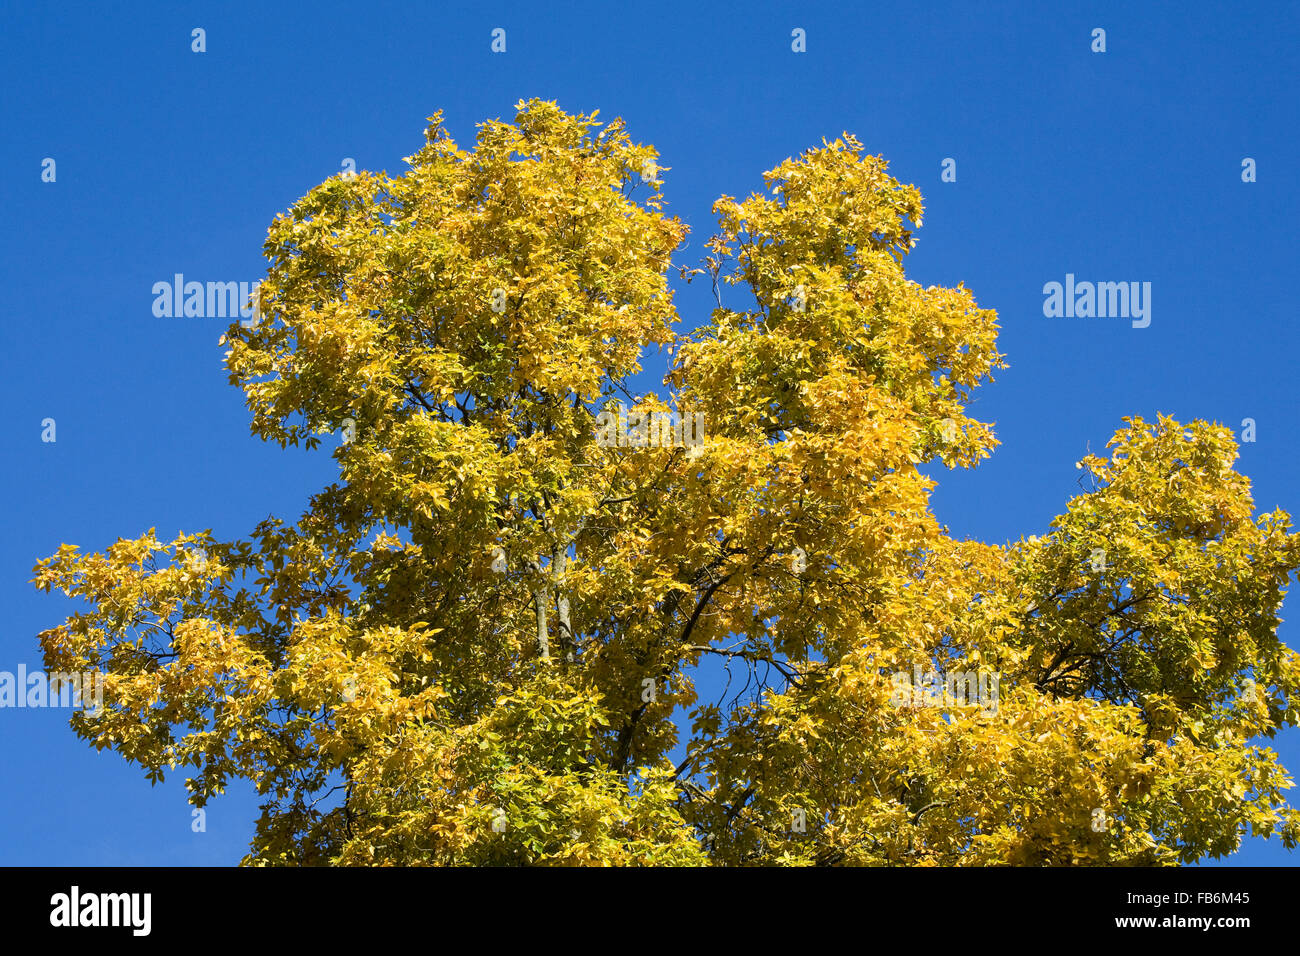 Carya ovata. Autumnal leaves of the Hickory tree against a blue sky. - Stock Image